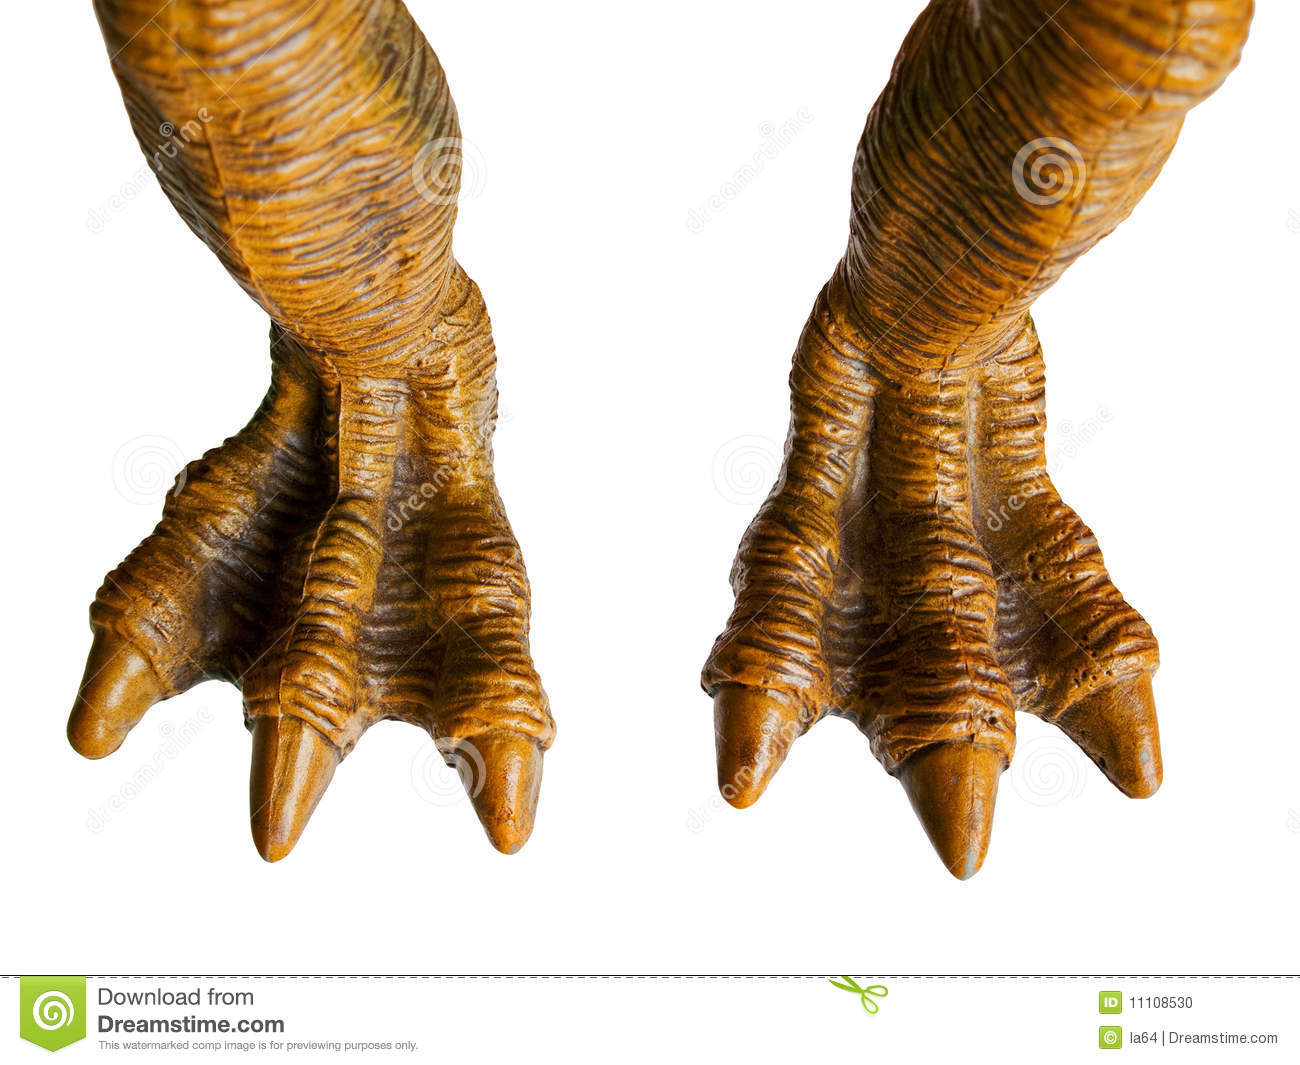 Monster toy or animal dinosaur spooky horror foot.